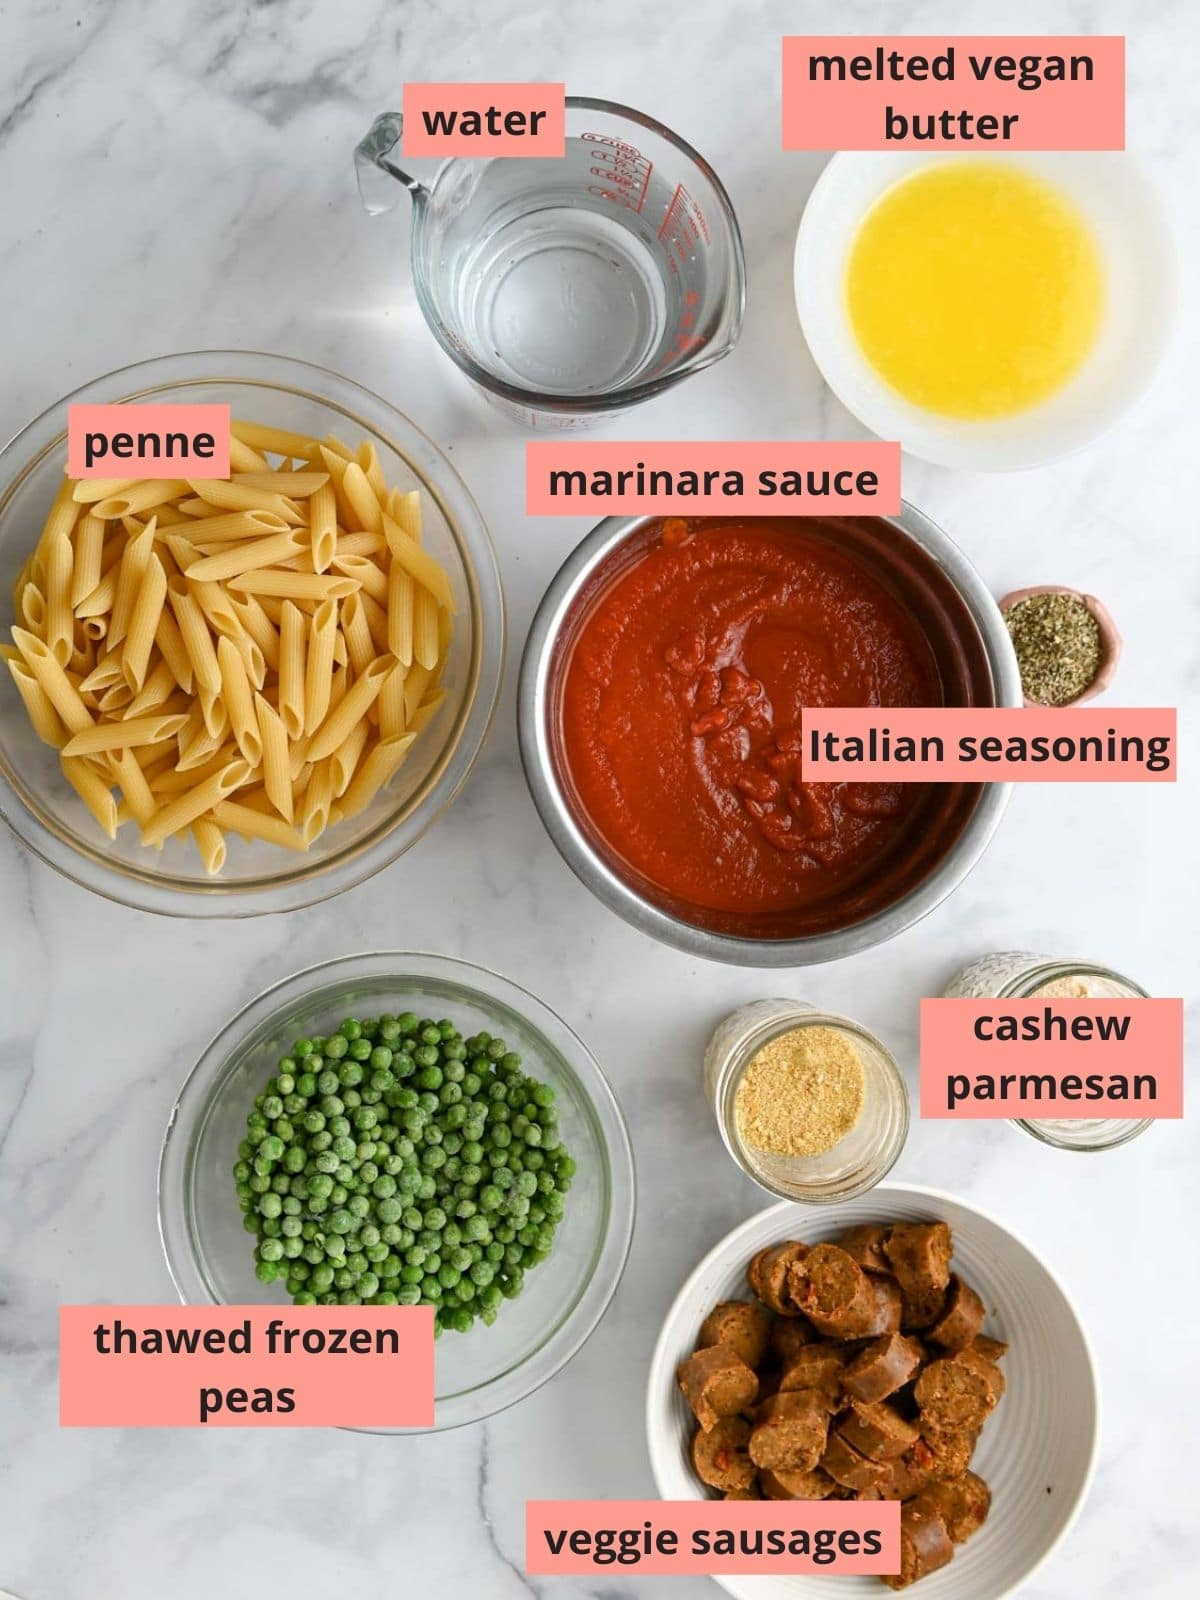 Labeled ingredients used to make pasta bake